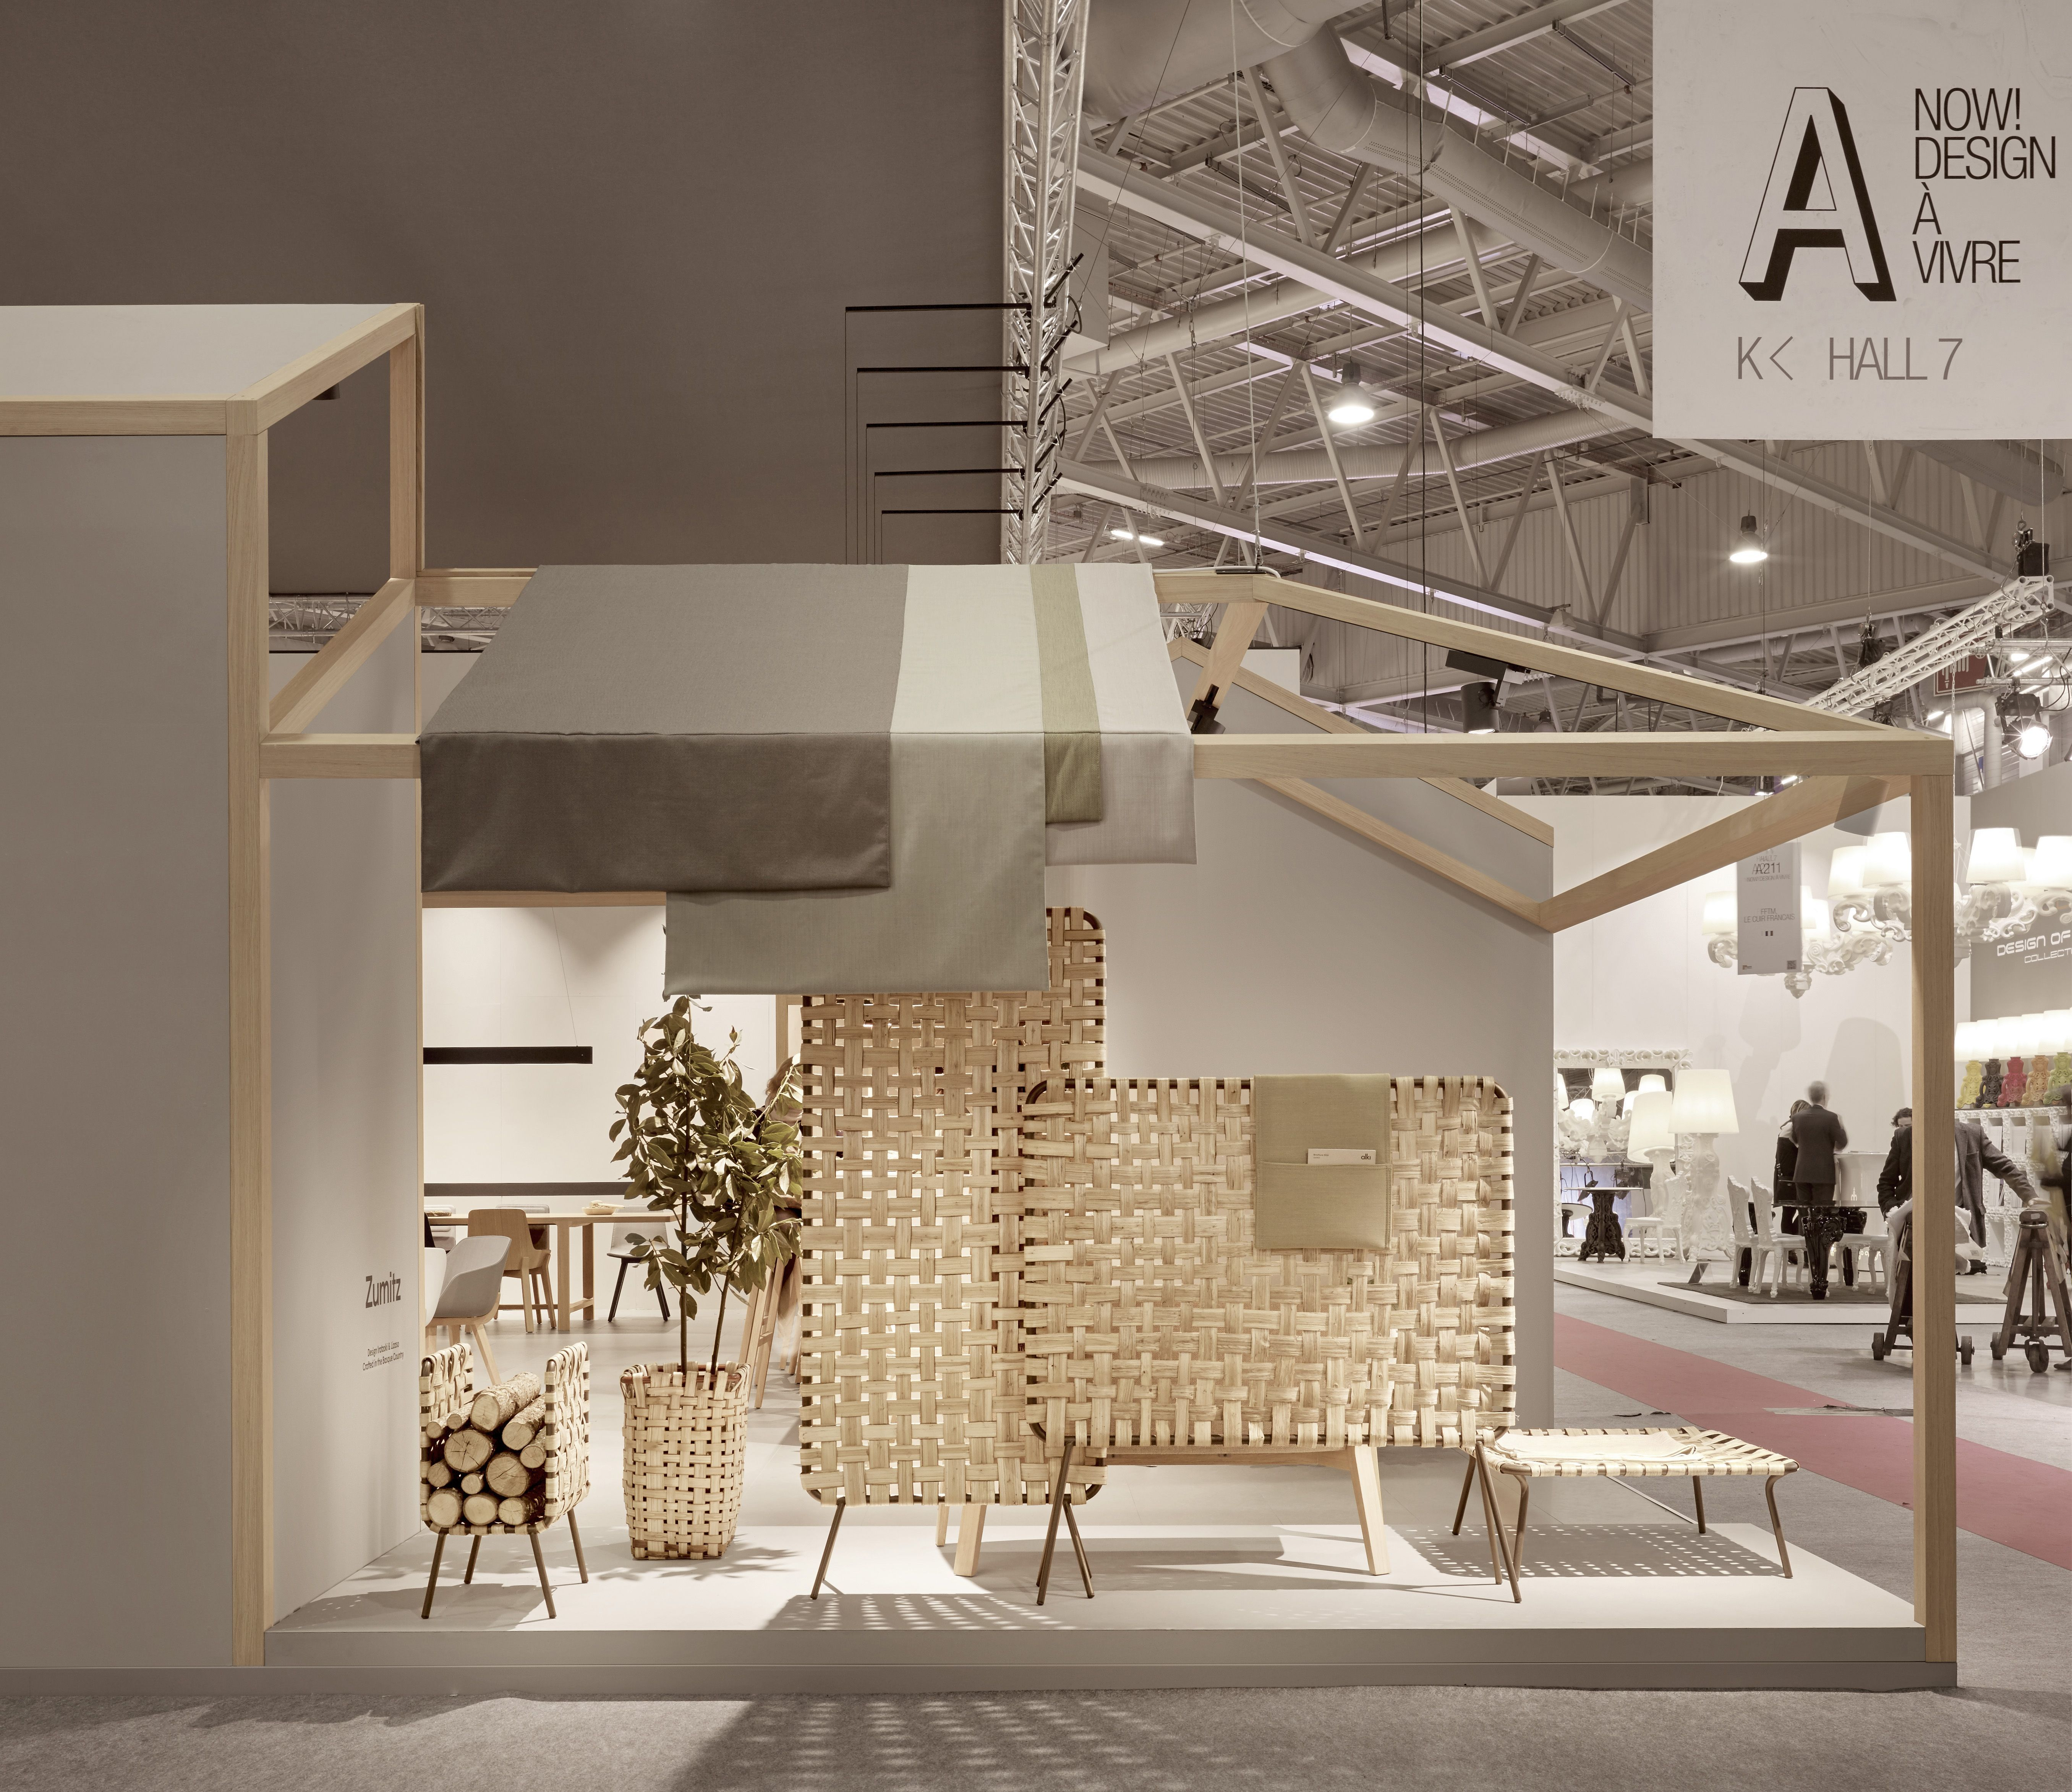 Maison Et Objet And More A Throwback In Time Unique Blog Stunning Interior Design Exhibition Booth Design Interior Design Projects